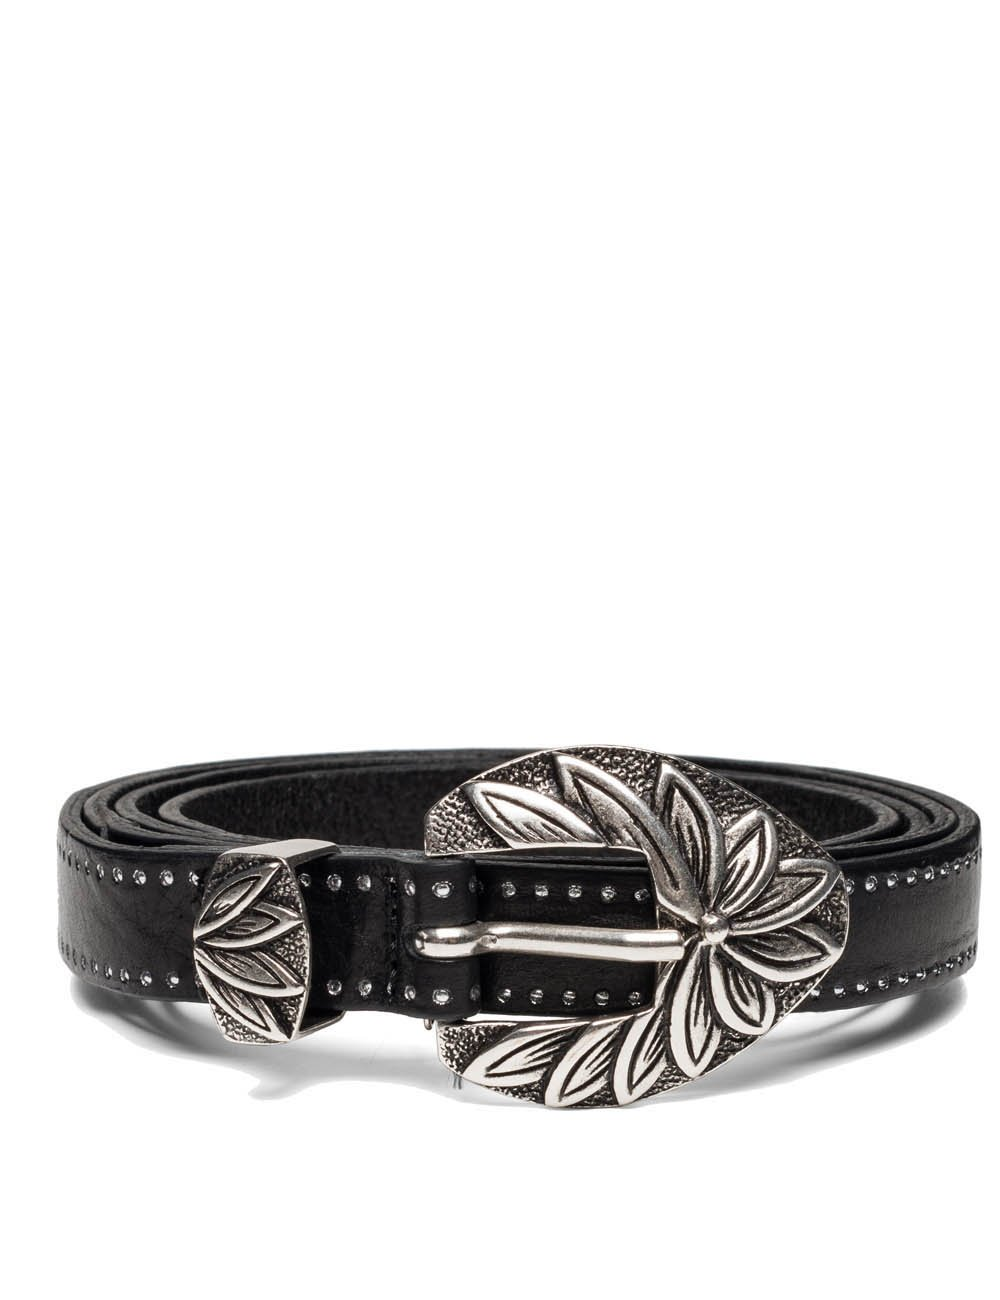 Replay Women's Women's Leather Black Belt With Studs in Size 85 Black